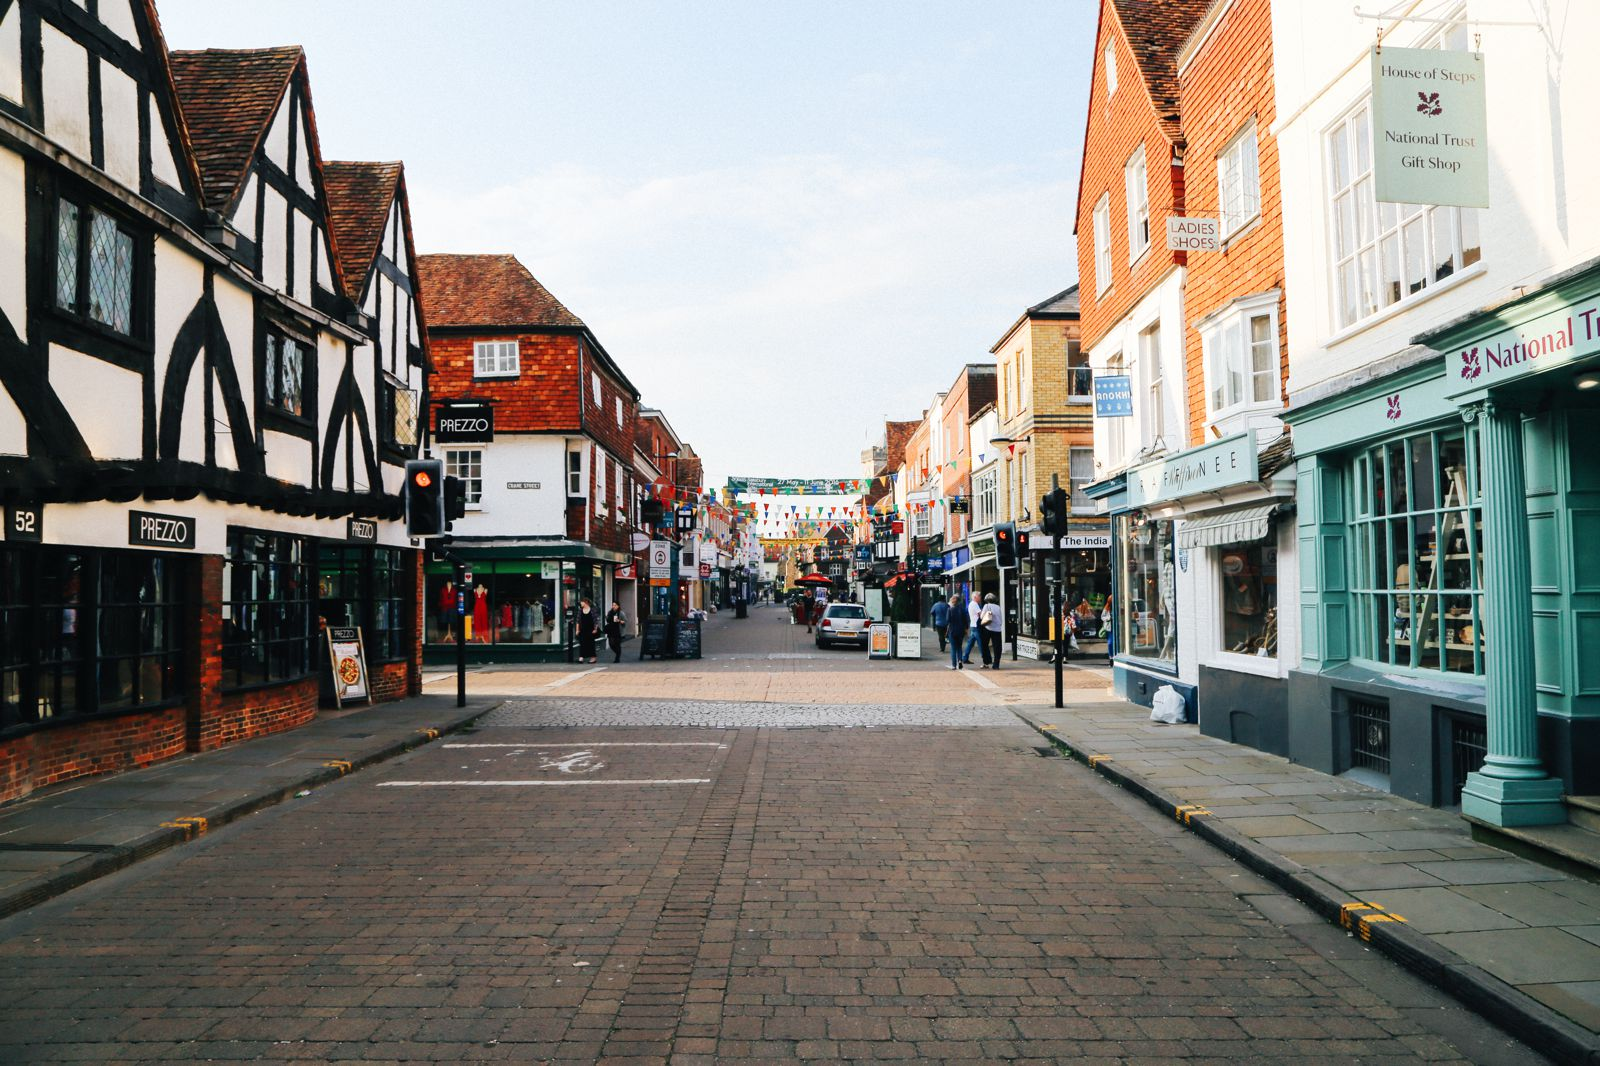 Stonehenge To Salisbury - The Start Of Our Great English Road Trip! (36)